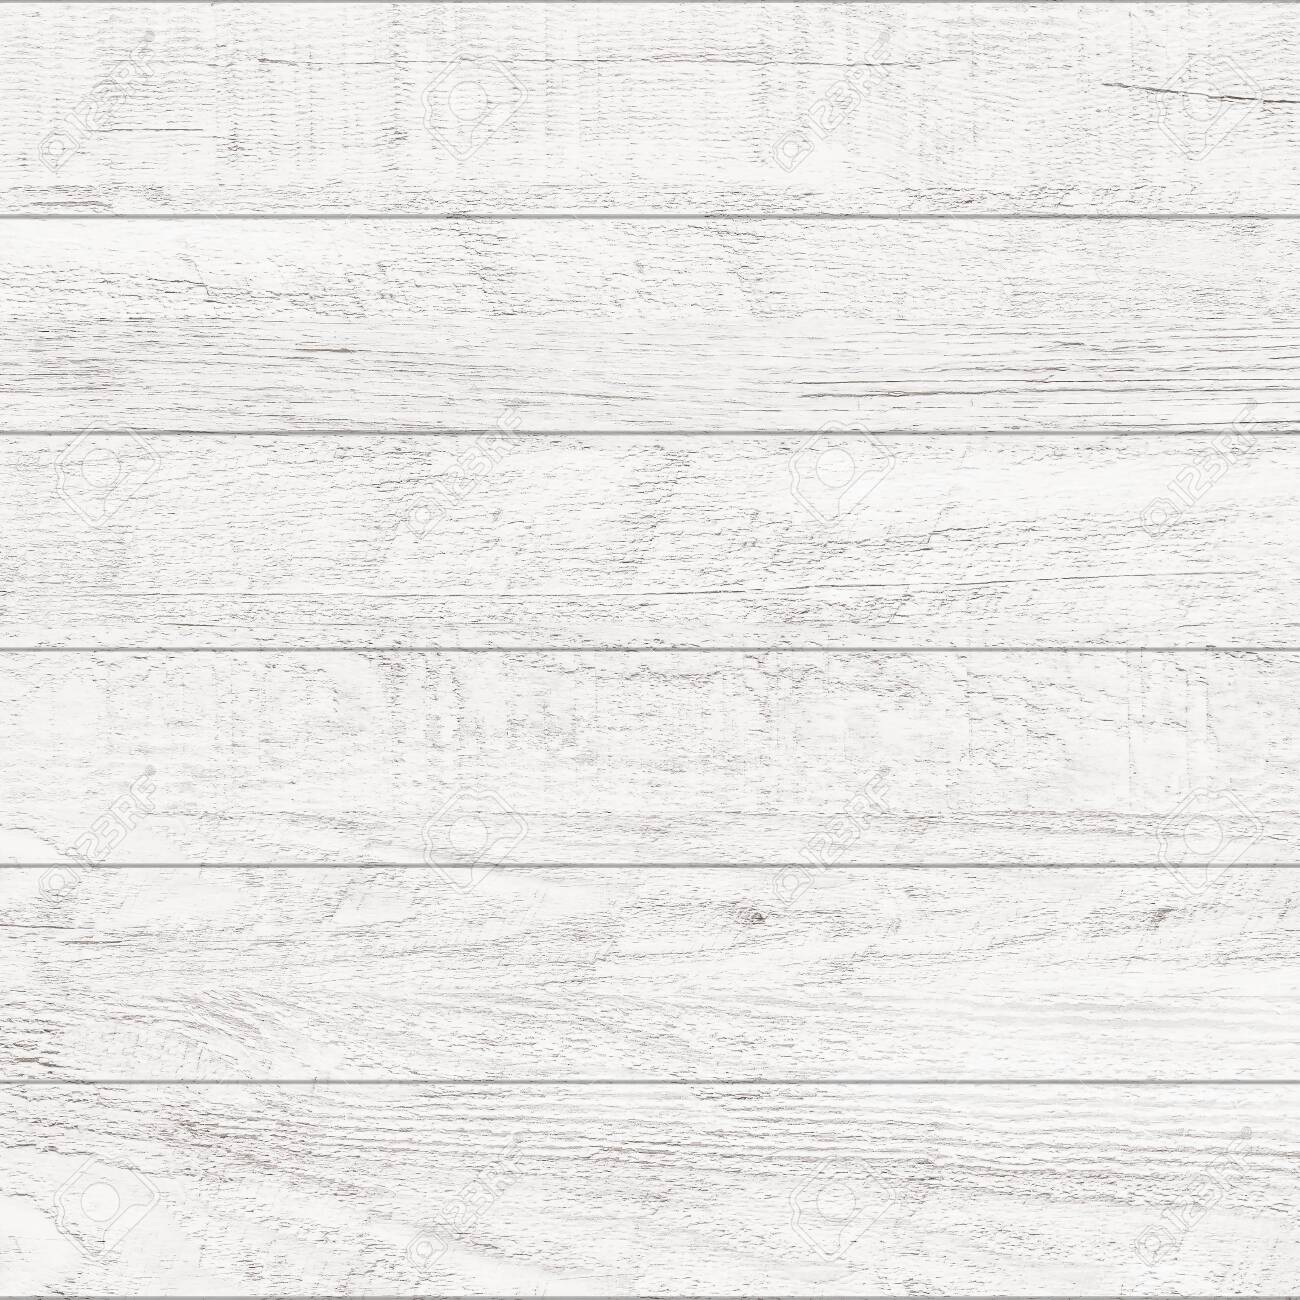 White wood pattern and texture for background. Close-up image. - 123612408